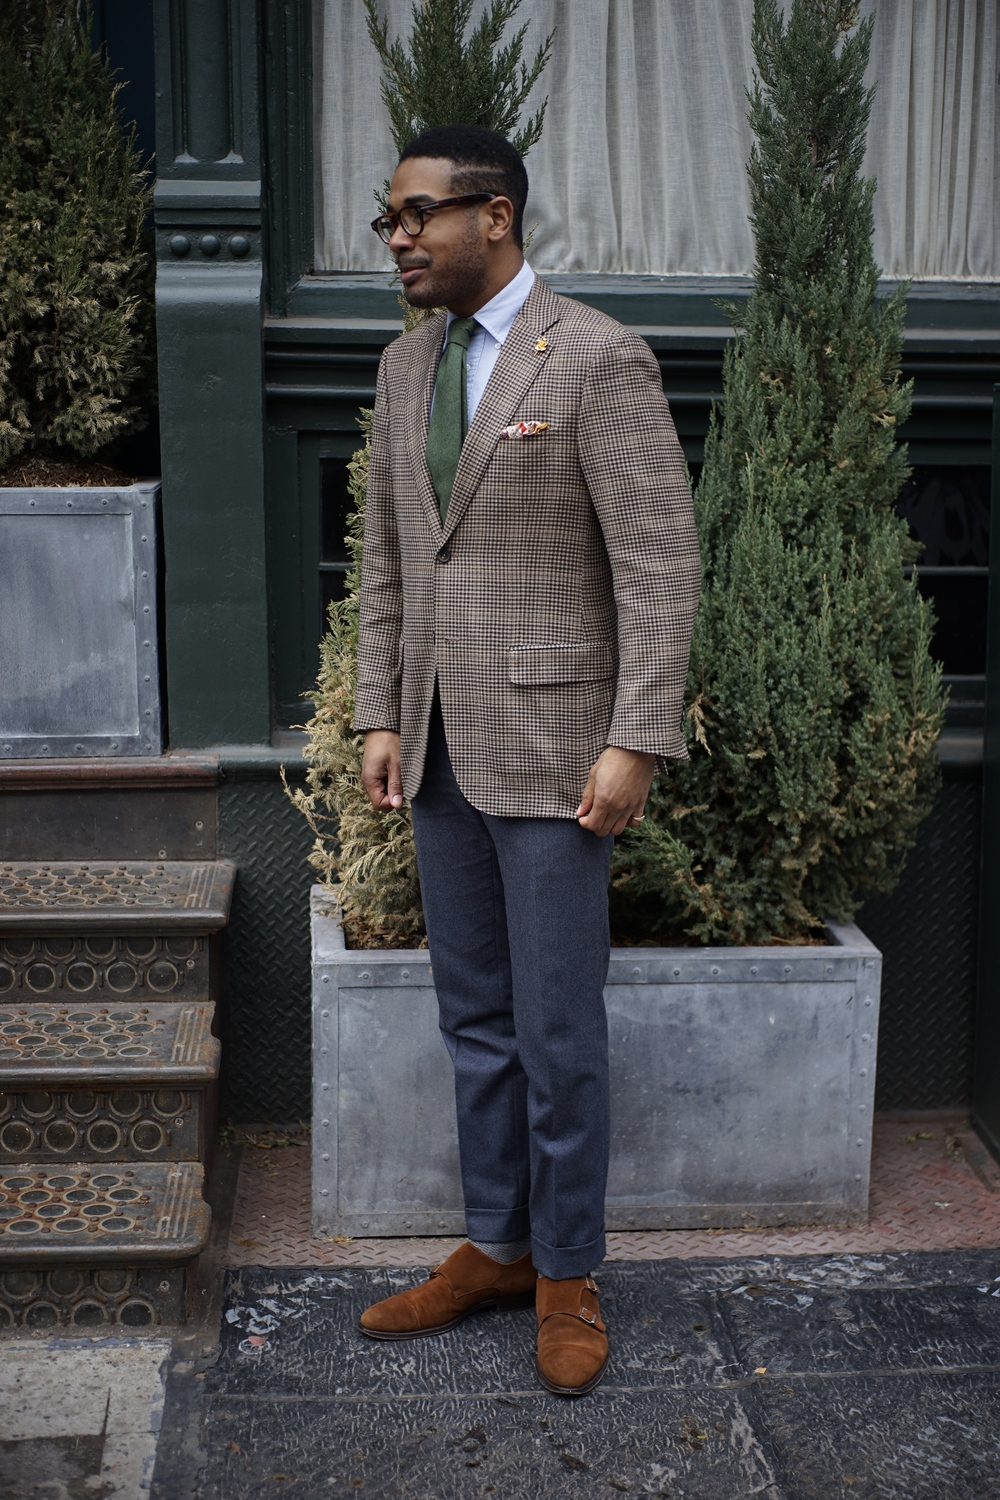 Trousers by Brioni, monk straps by Howard Yount